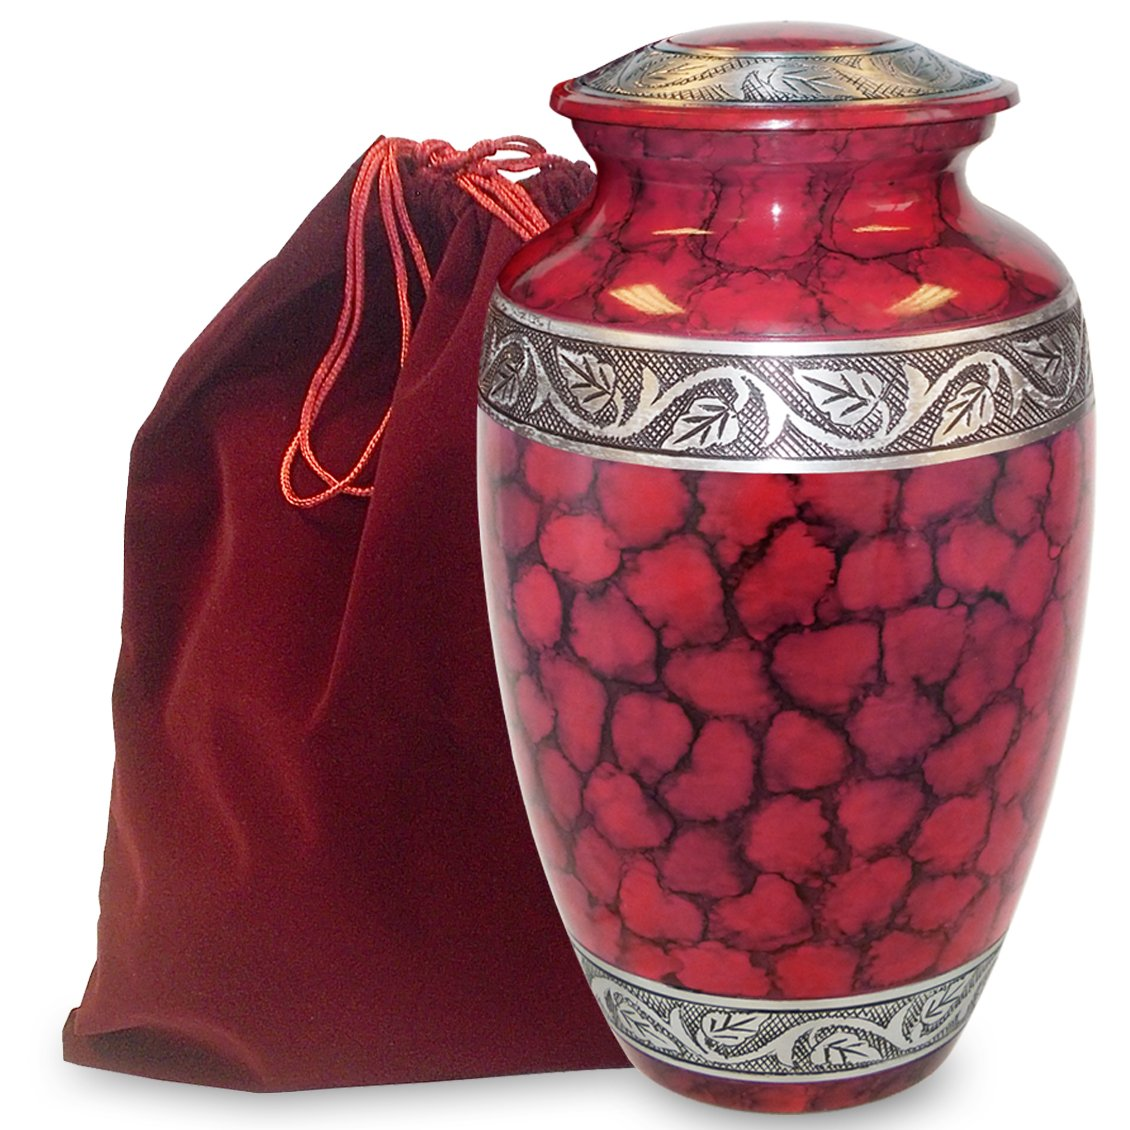 Celebration of Life Red Adult Urn For Human Ashes - Share Your Special Love With This Clasic and Comforting Urn - This Beautiful Urn Makes A Nice Tribute To Your Loved One - Includes Velvet Bag